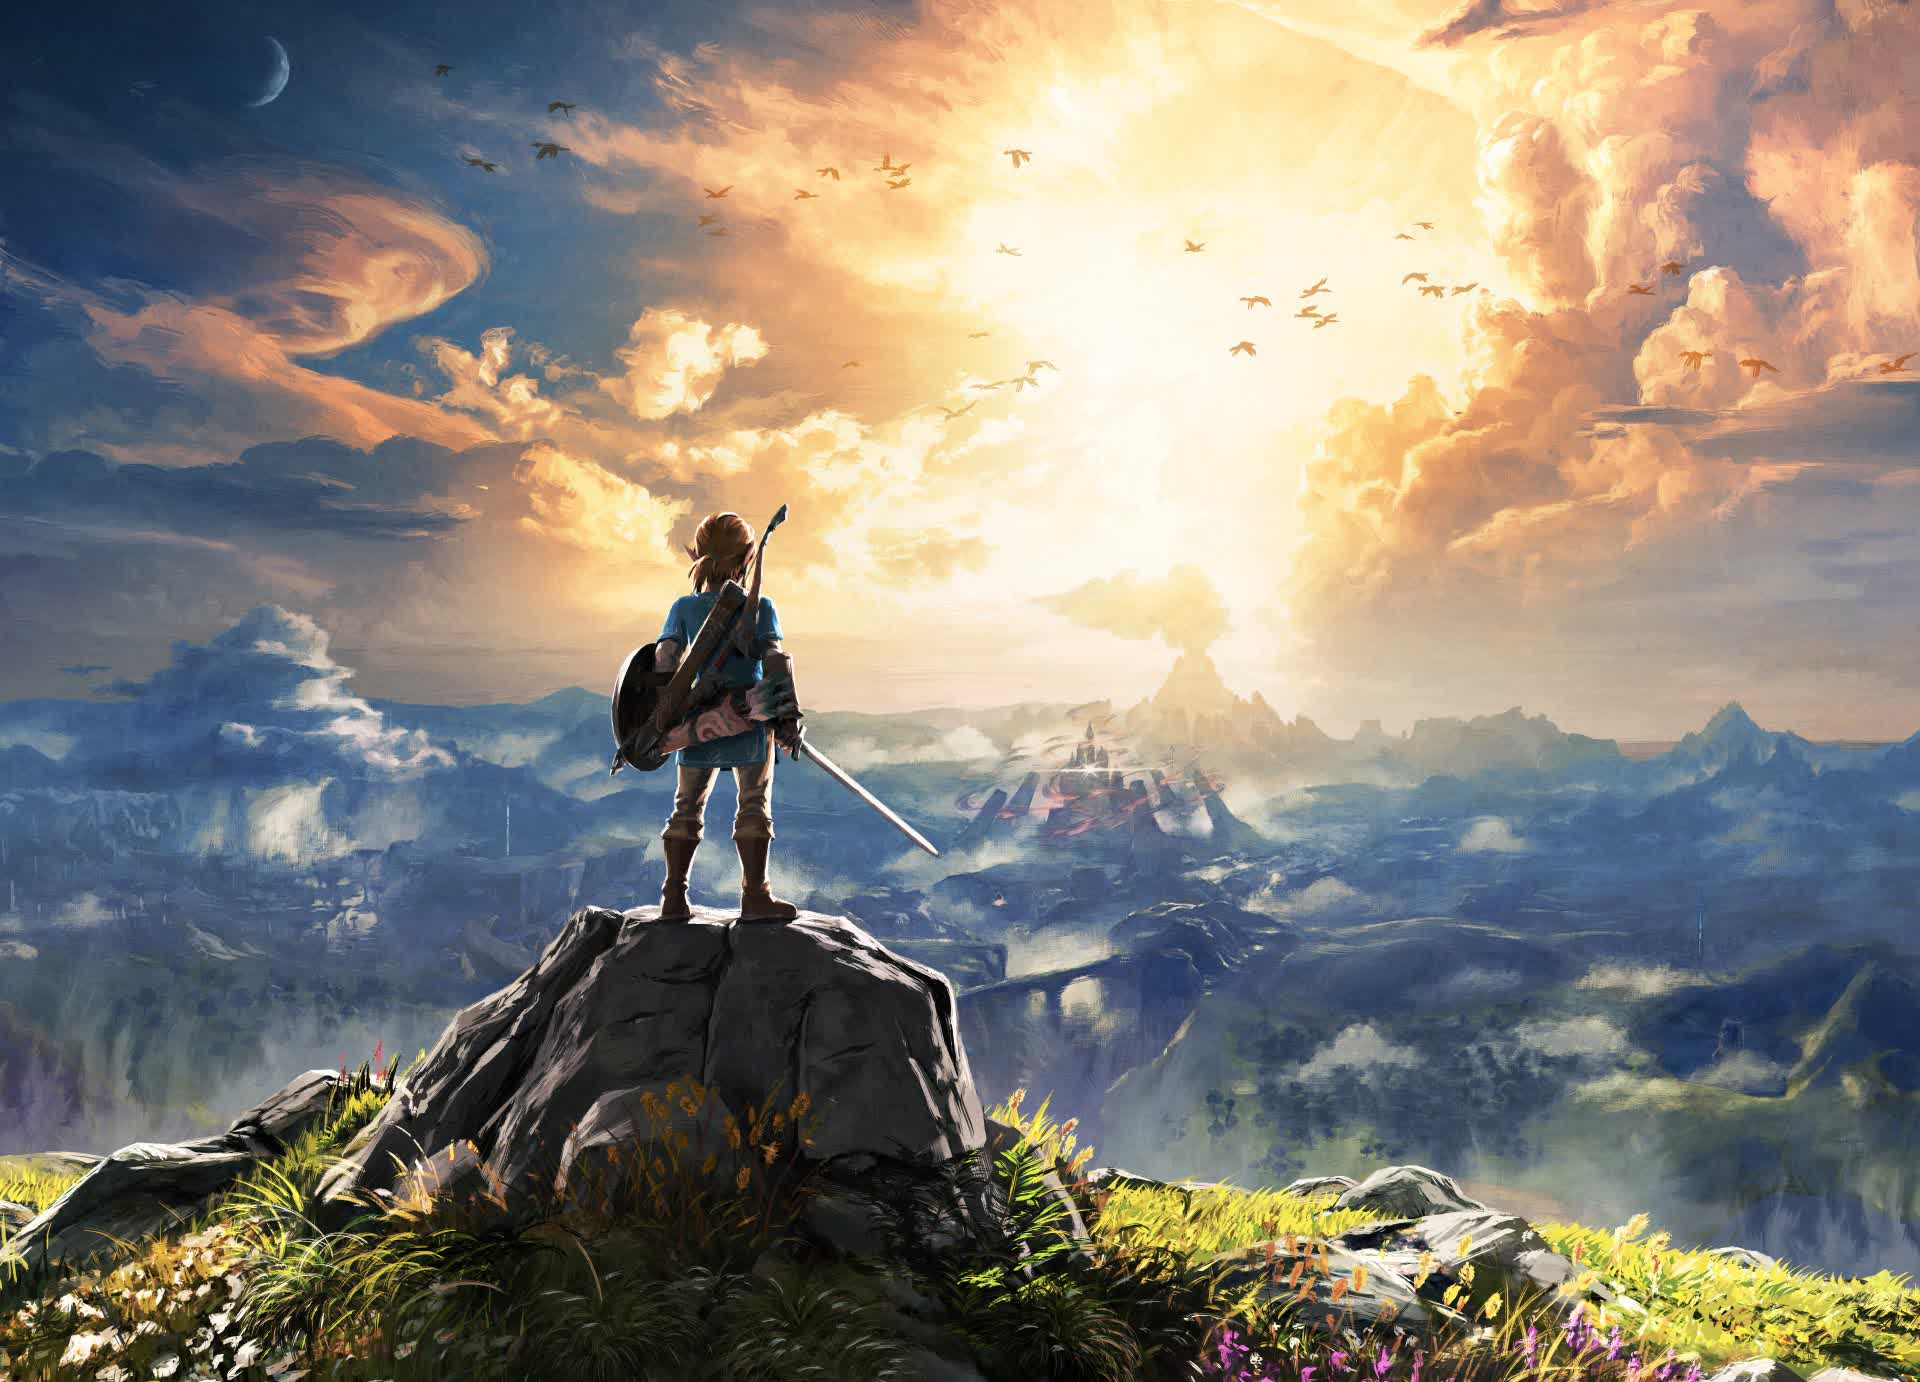 The Legend of Zelda: Breath of the Wild is gorgeous in 8K with ray tracing